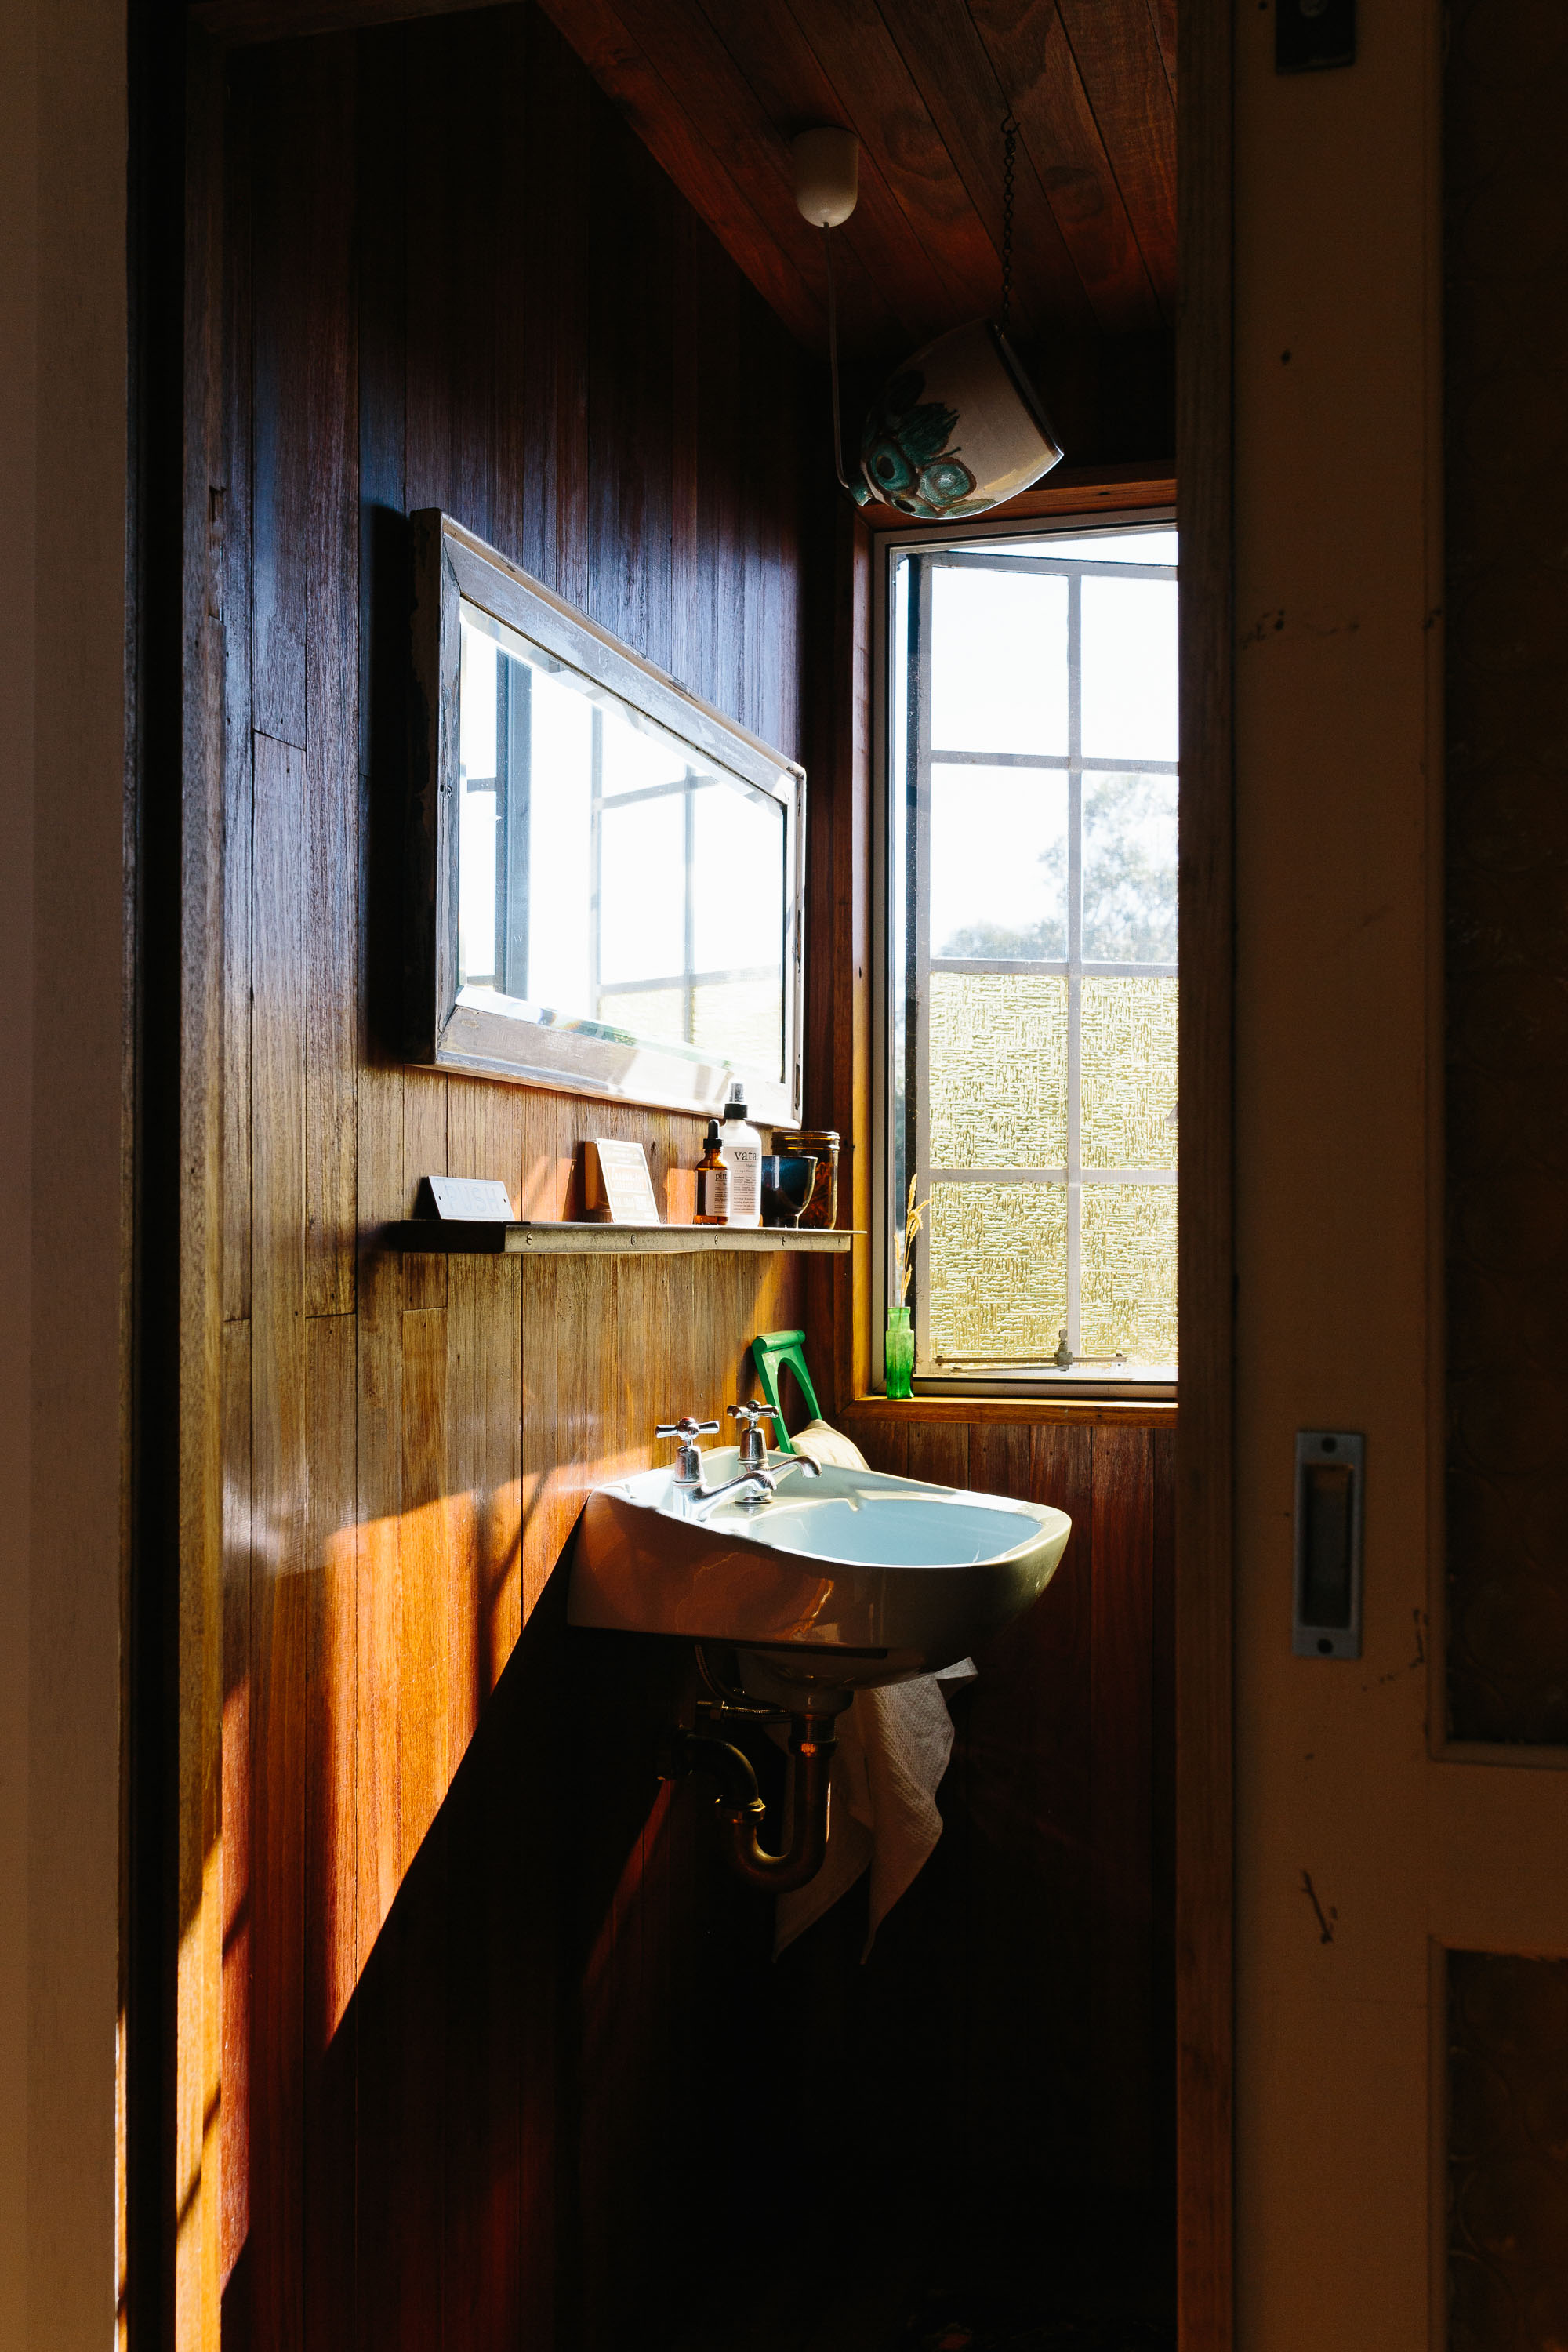 Marnie Hawson, Melbourne interior photographer, for the Sugar Shack in Venus Bay